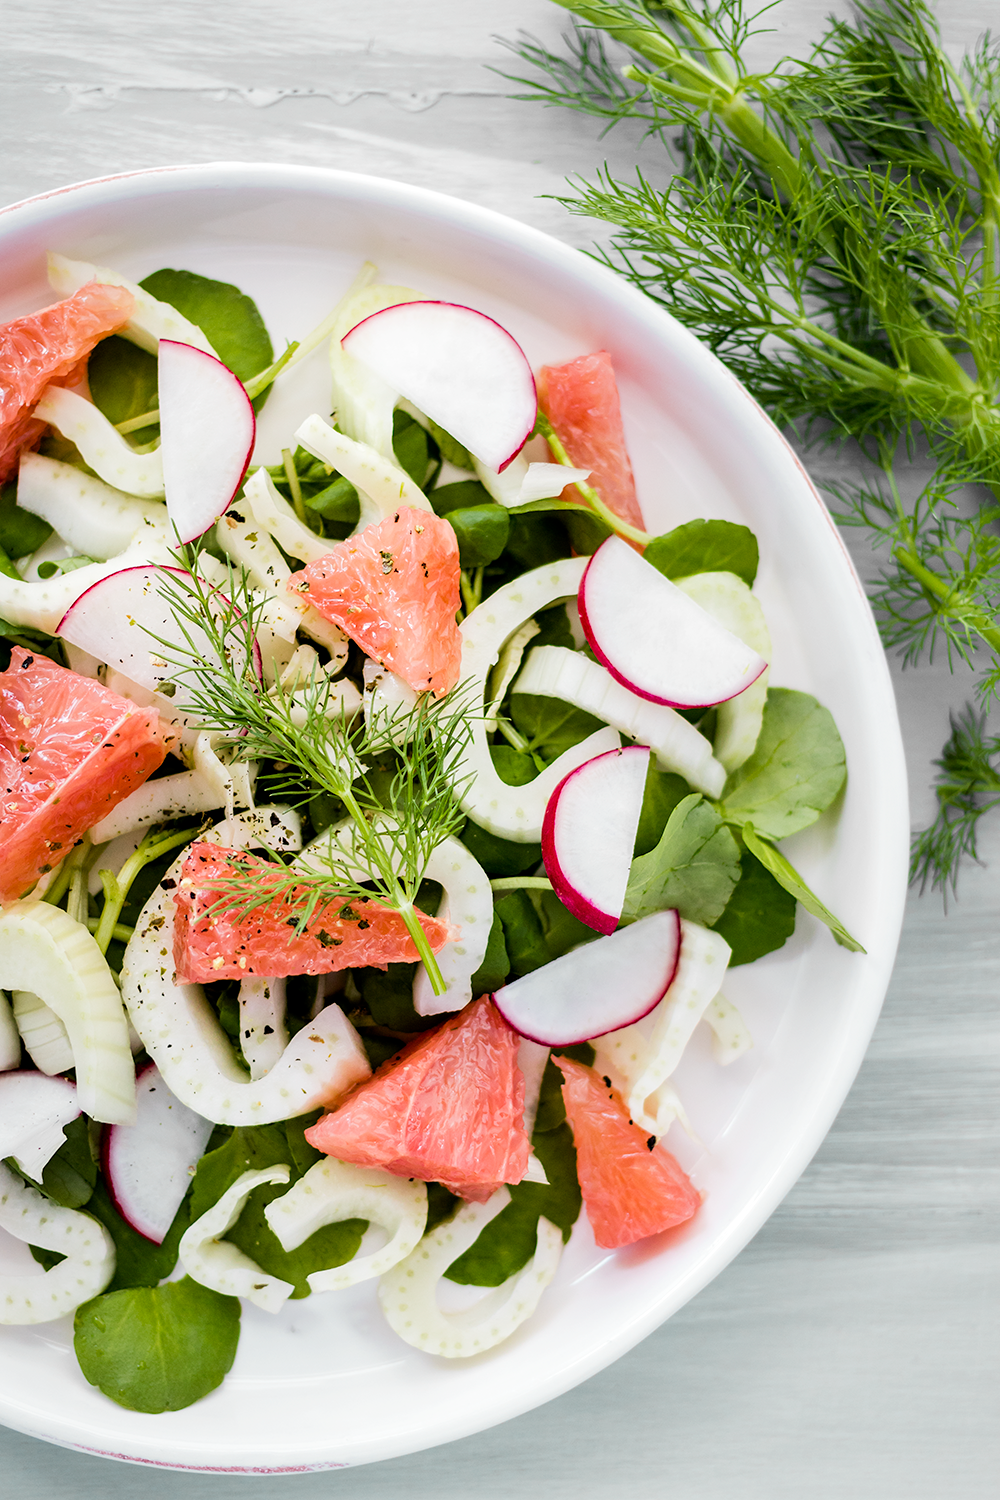 Brighten Your Plate With This Vibrant Fennel And Grapefruit Salad